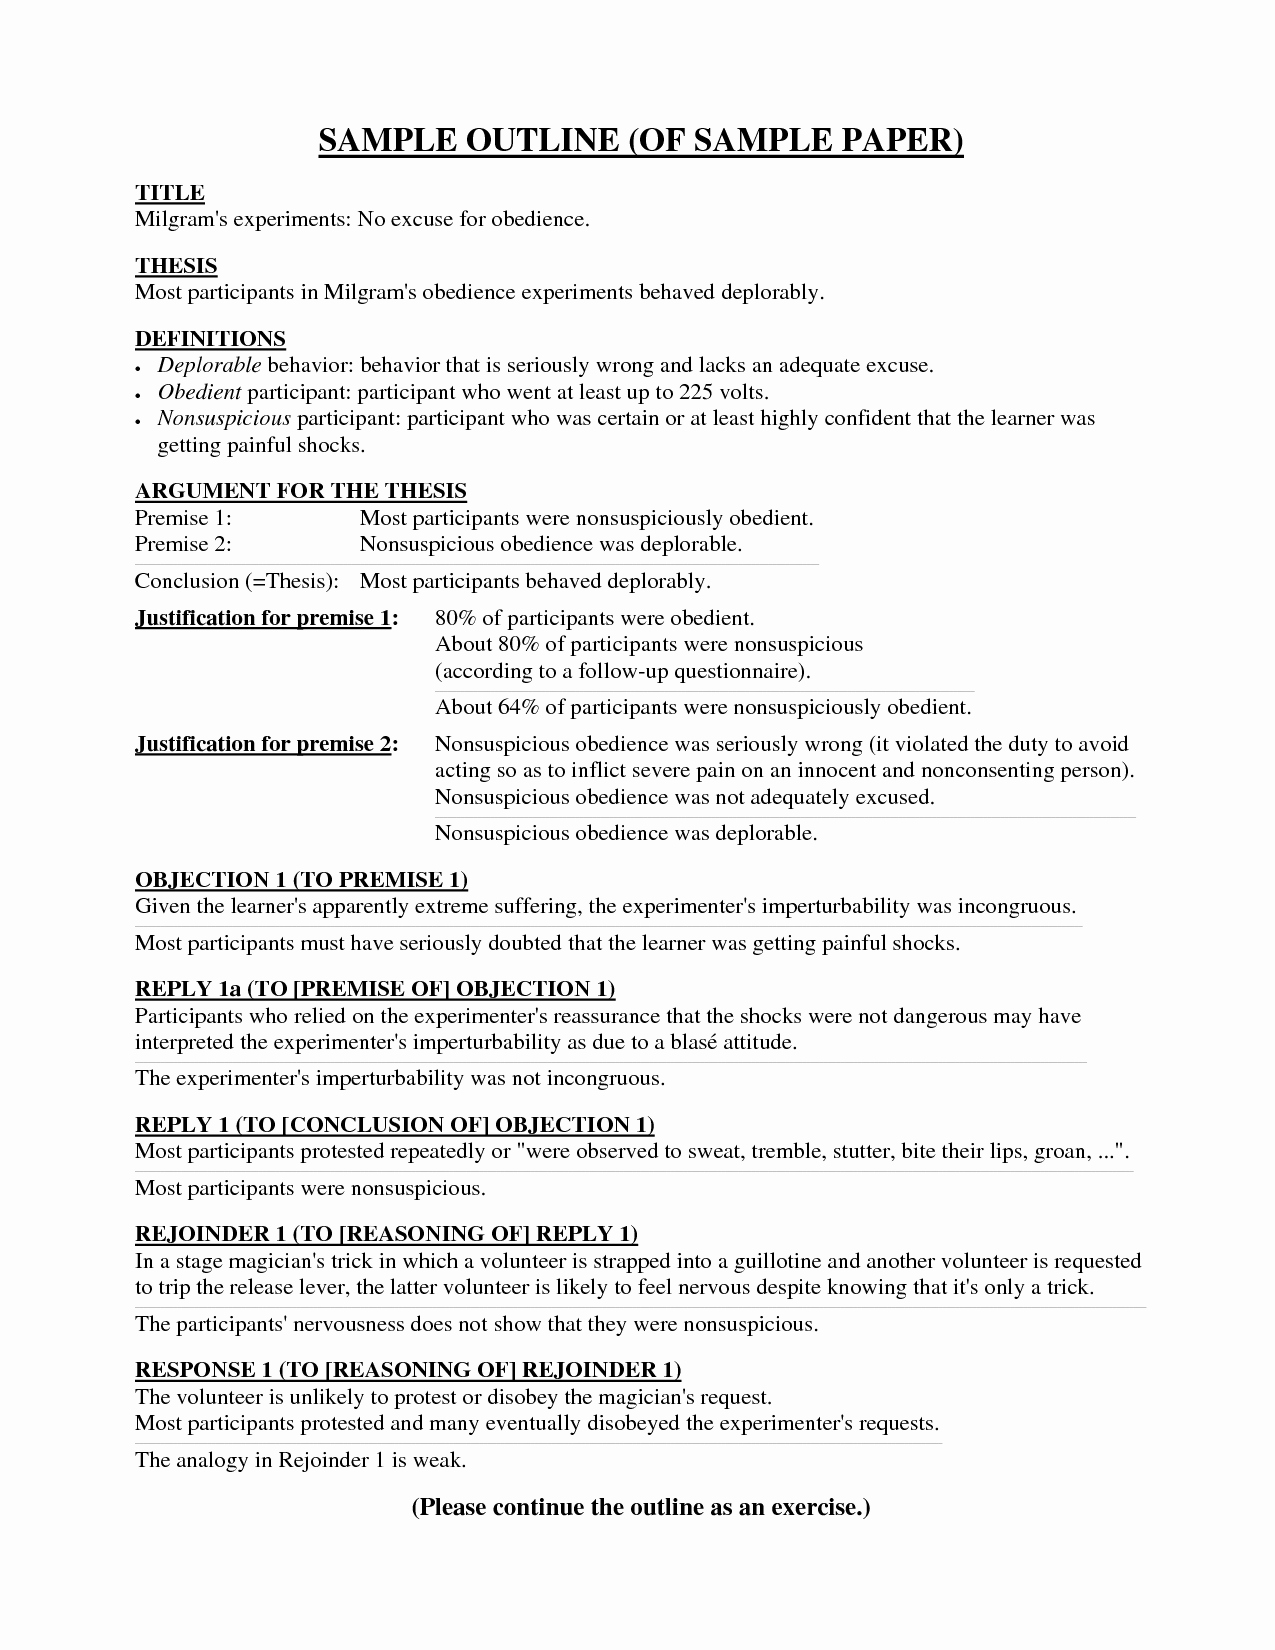 Temple University Essay Examples Awesome Temple University Essay Help Temple University